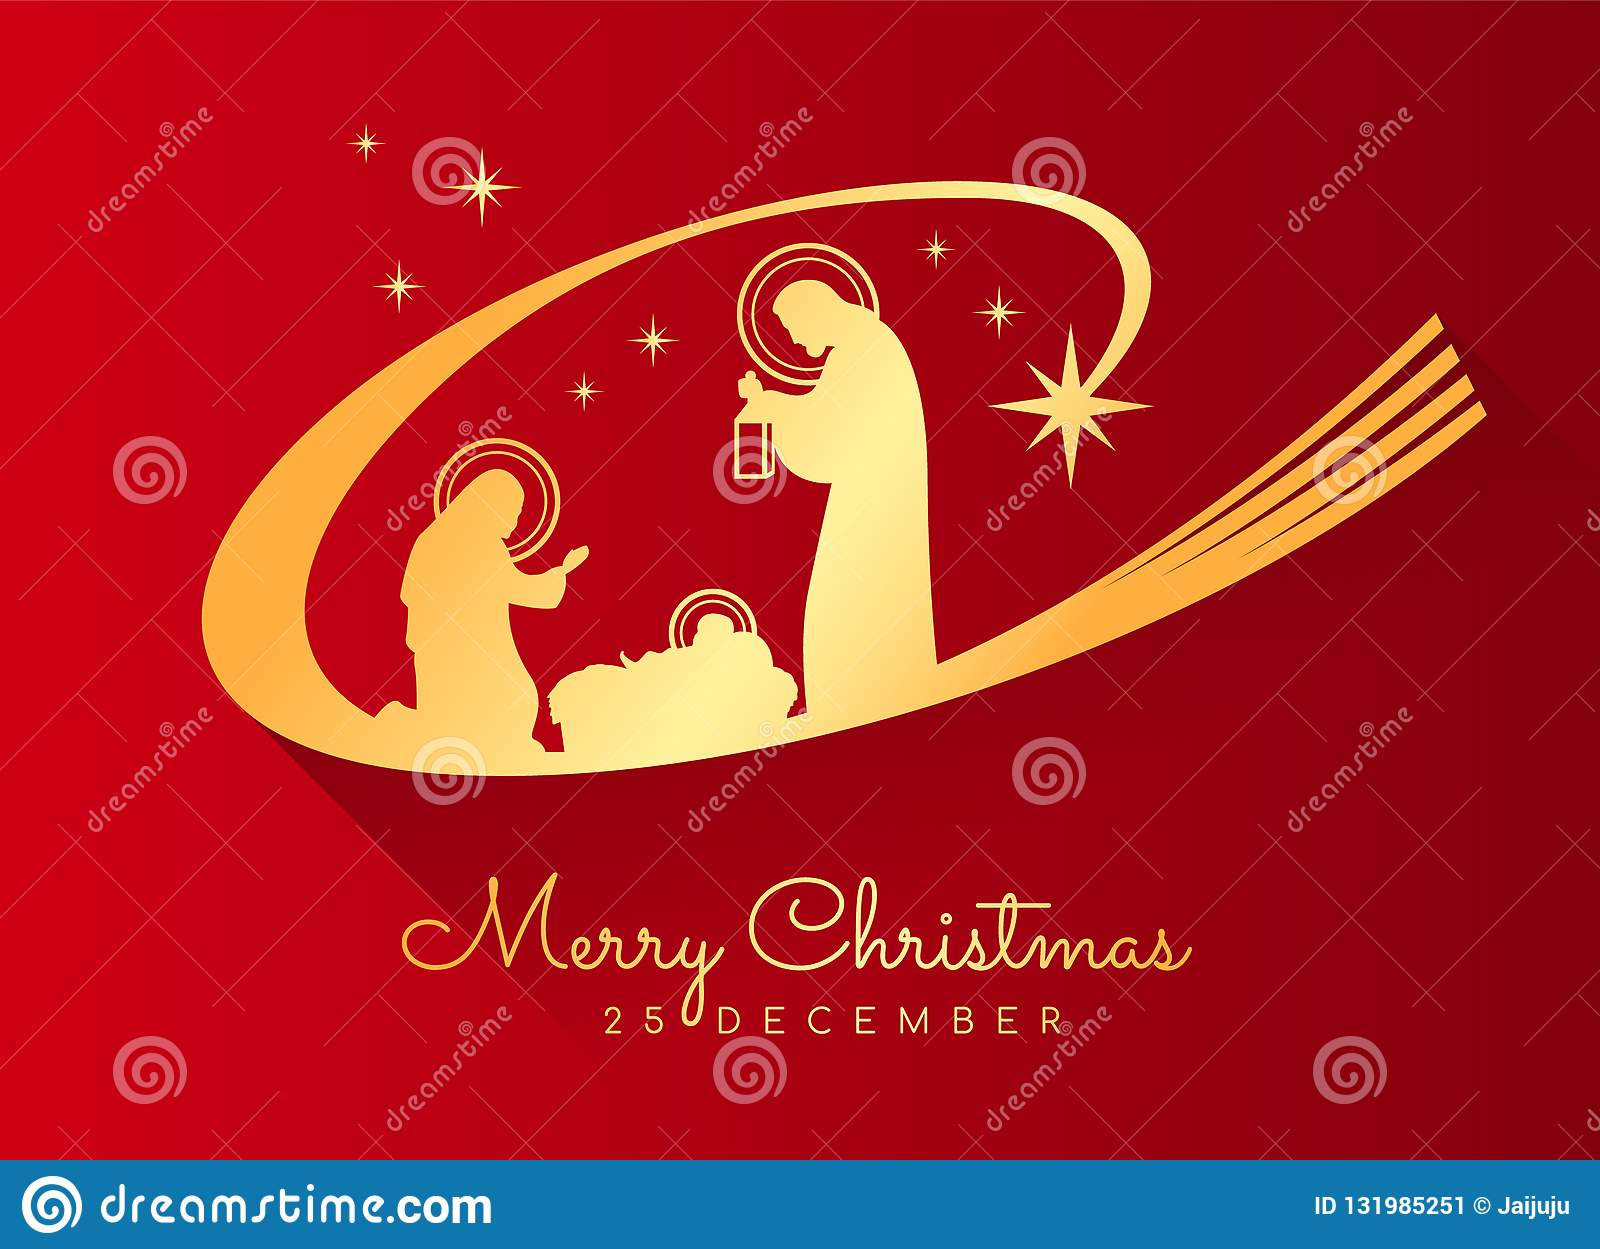 Merry Christmas Jesus.Merry Christmas Banner With Gold Nightly Christmas Scenery